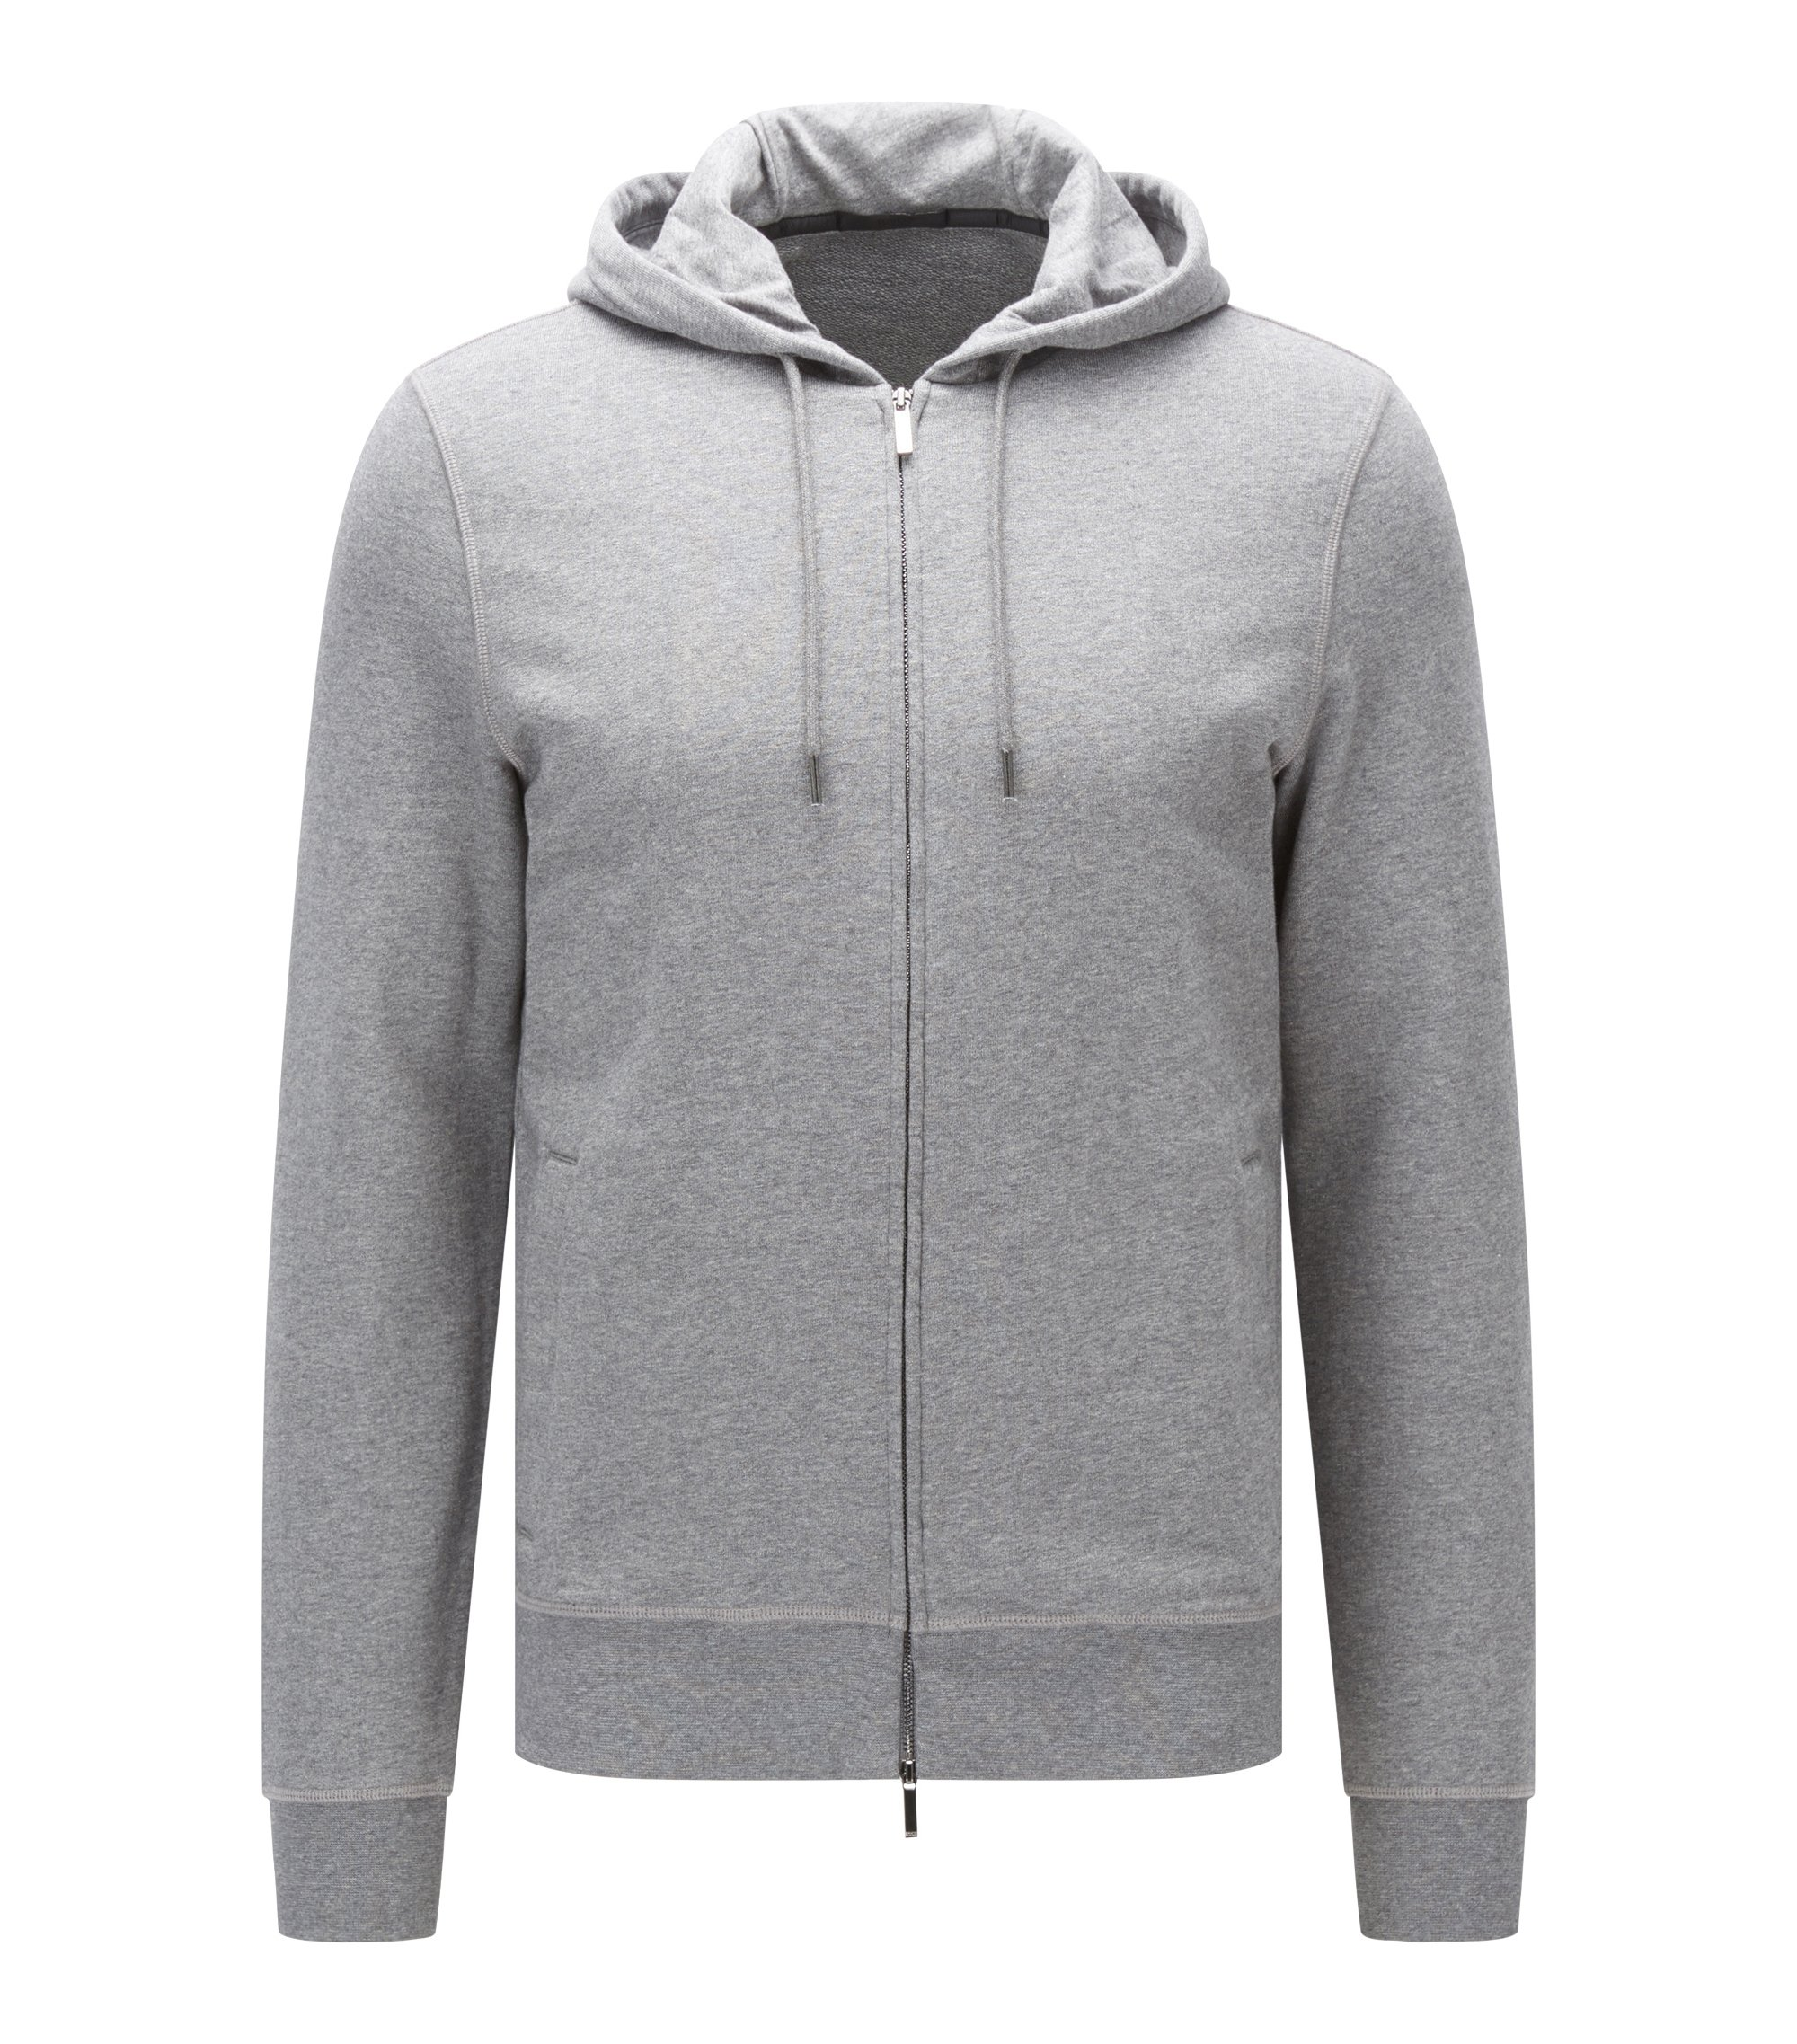 Sweat Slim Fit zippé molleton bouclette de coton, Gris